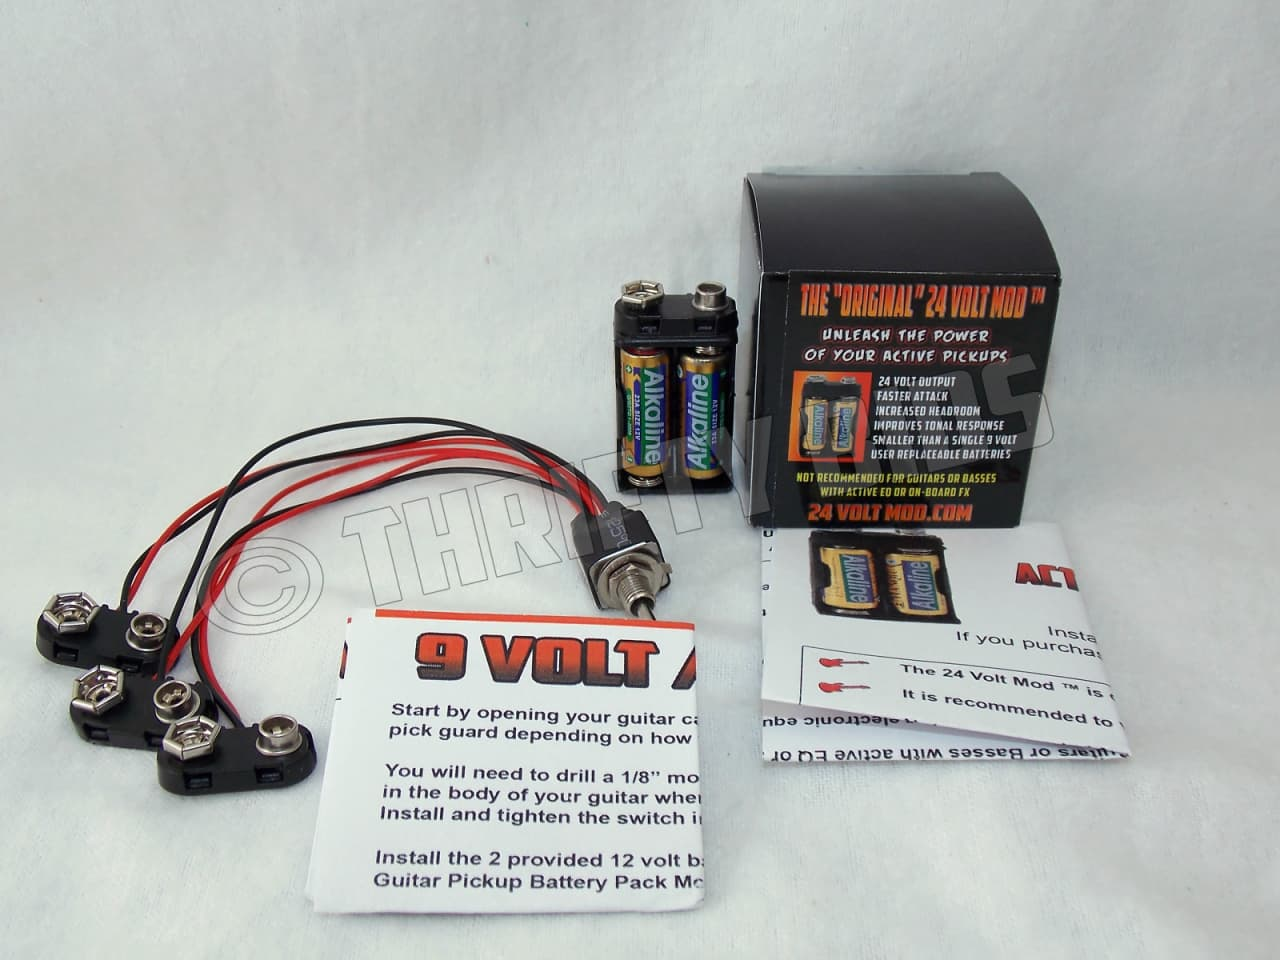 24 VOLT Mod Active Guitar Pickup Battery Pack ™ With | Reverb